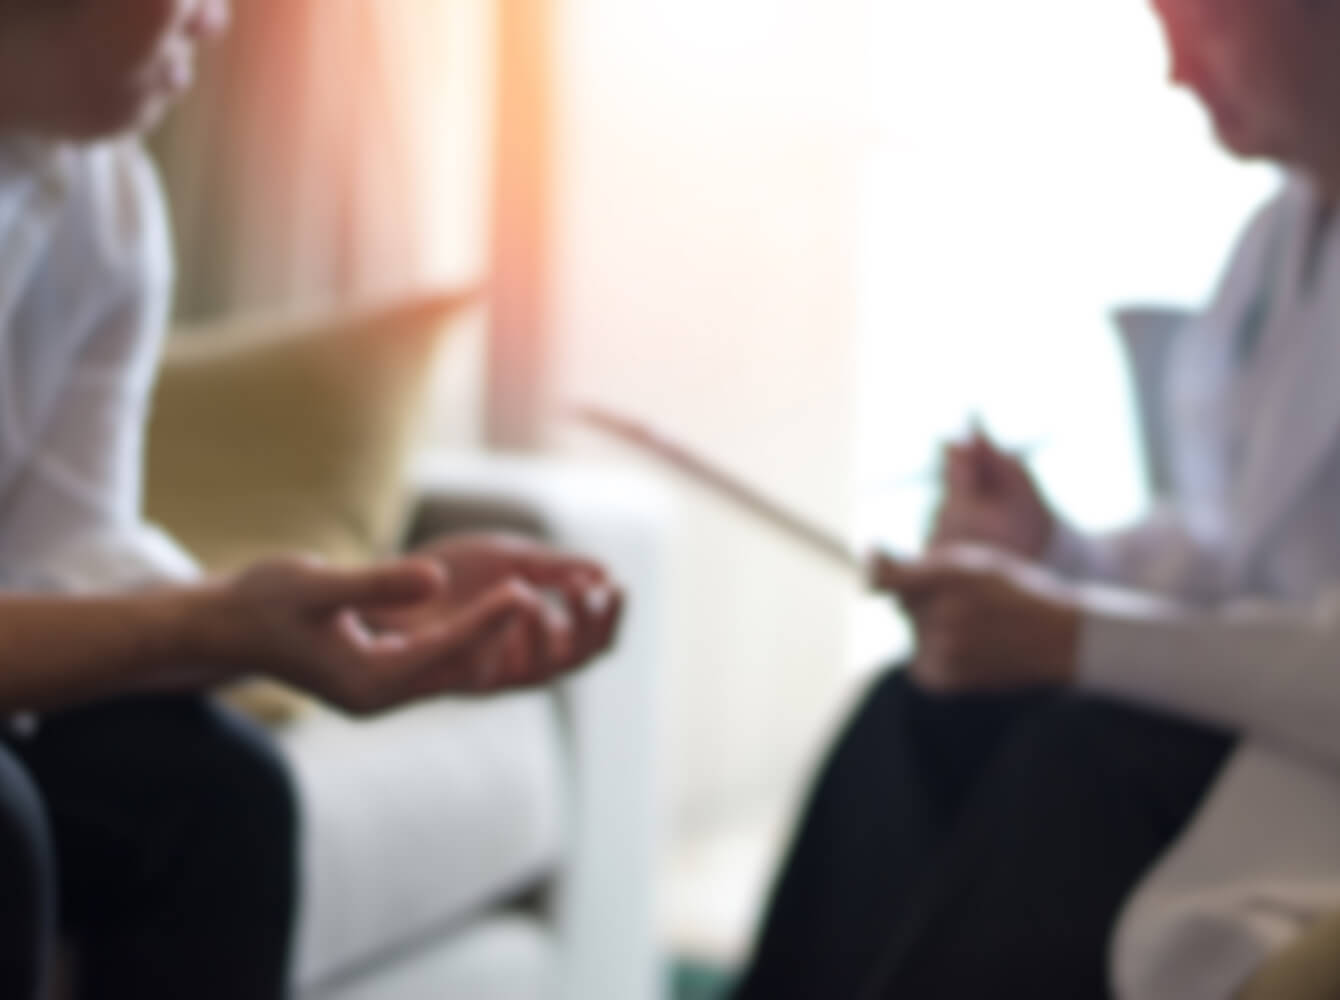 Image of two people out-of-focus in a counseling session